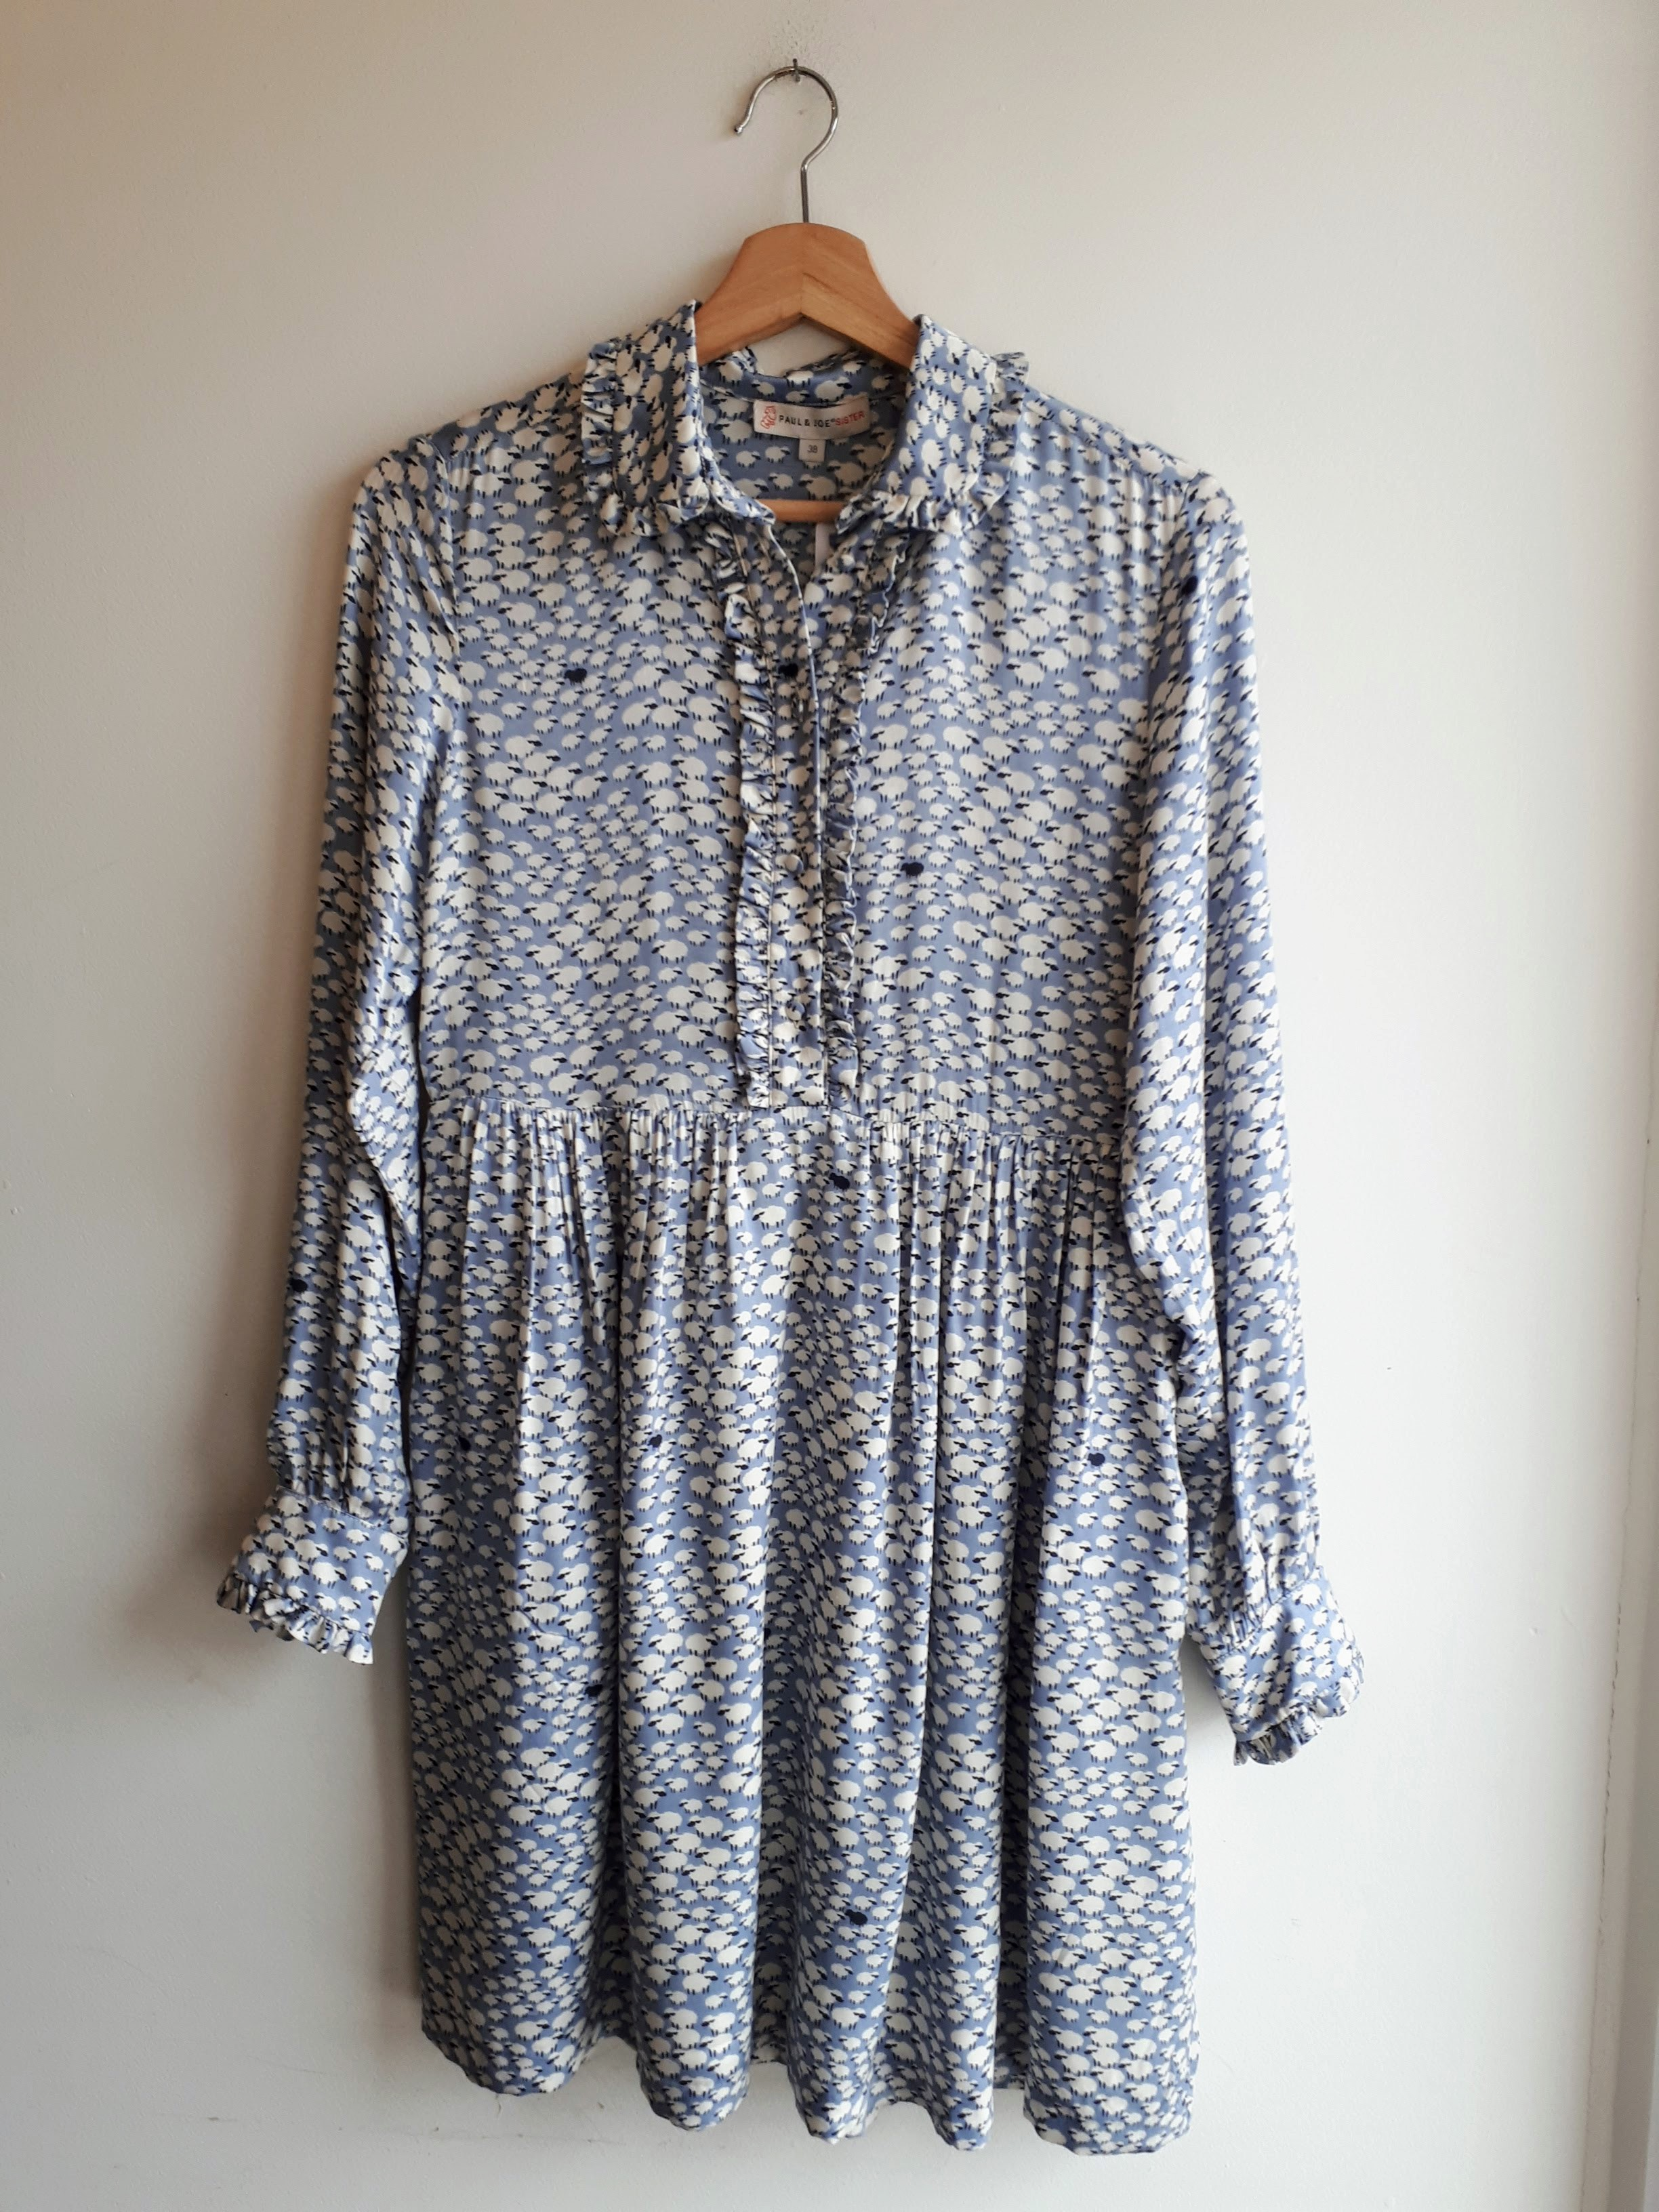 Paul and Joe Sister dress; Size 8, $42